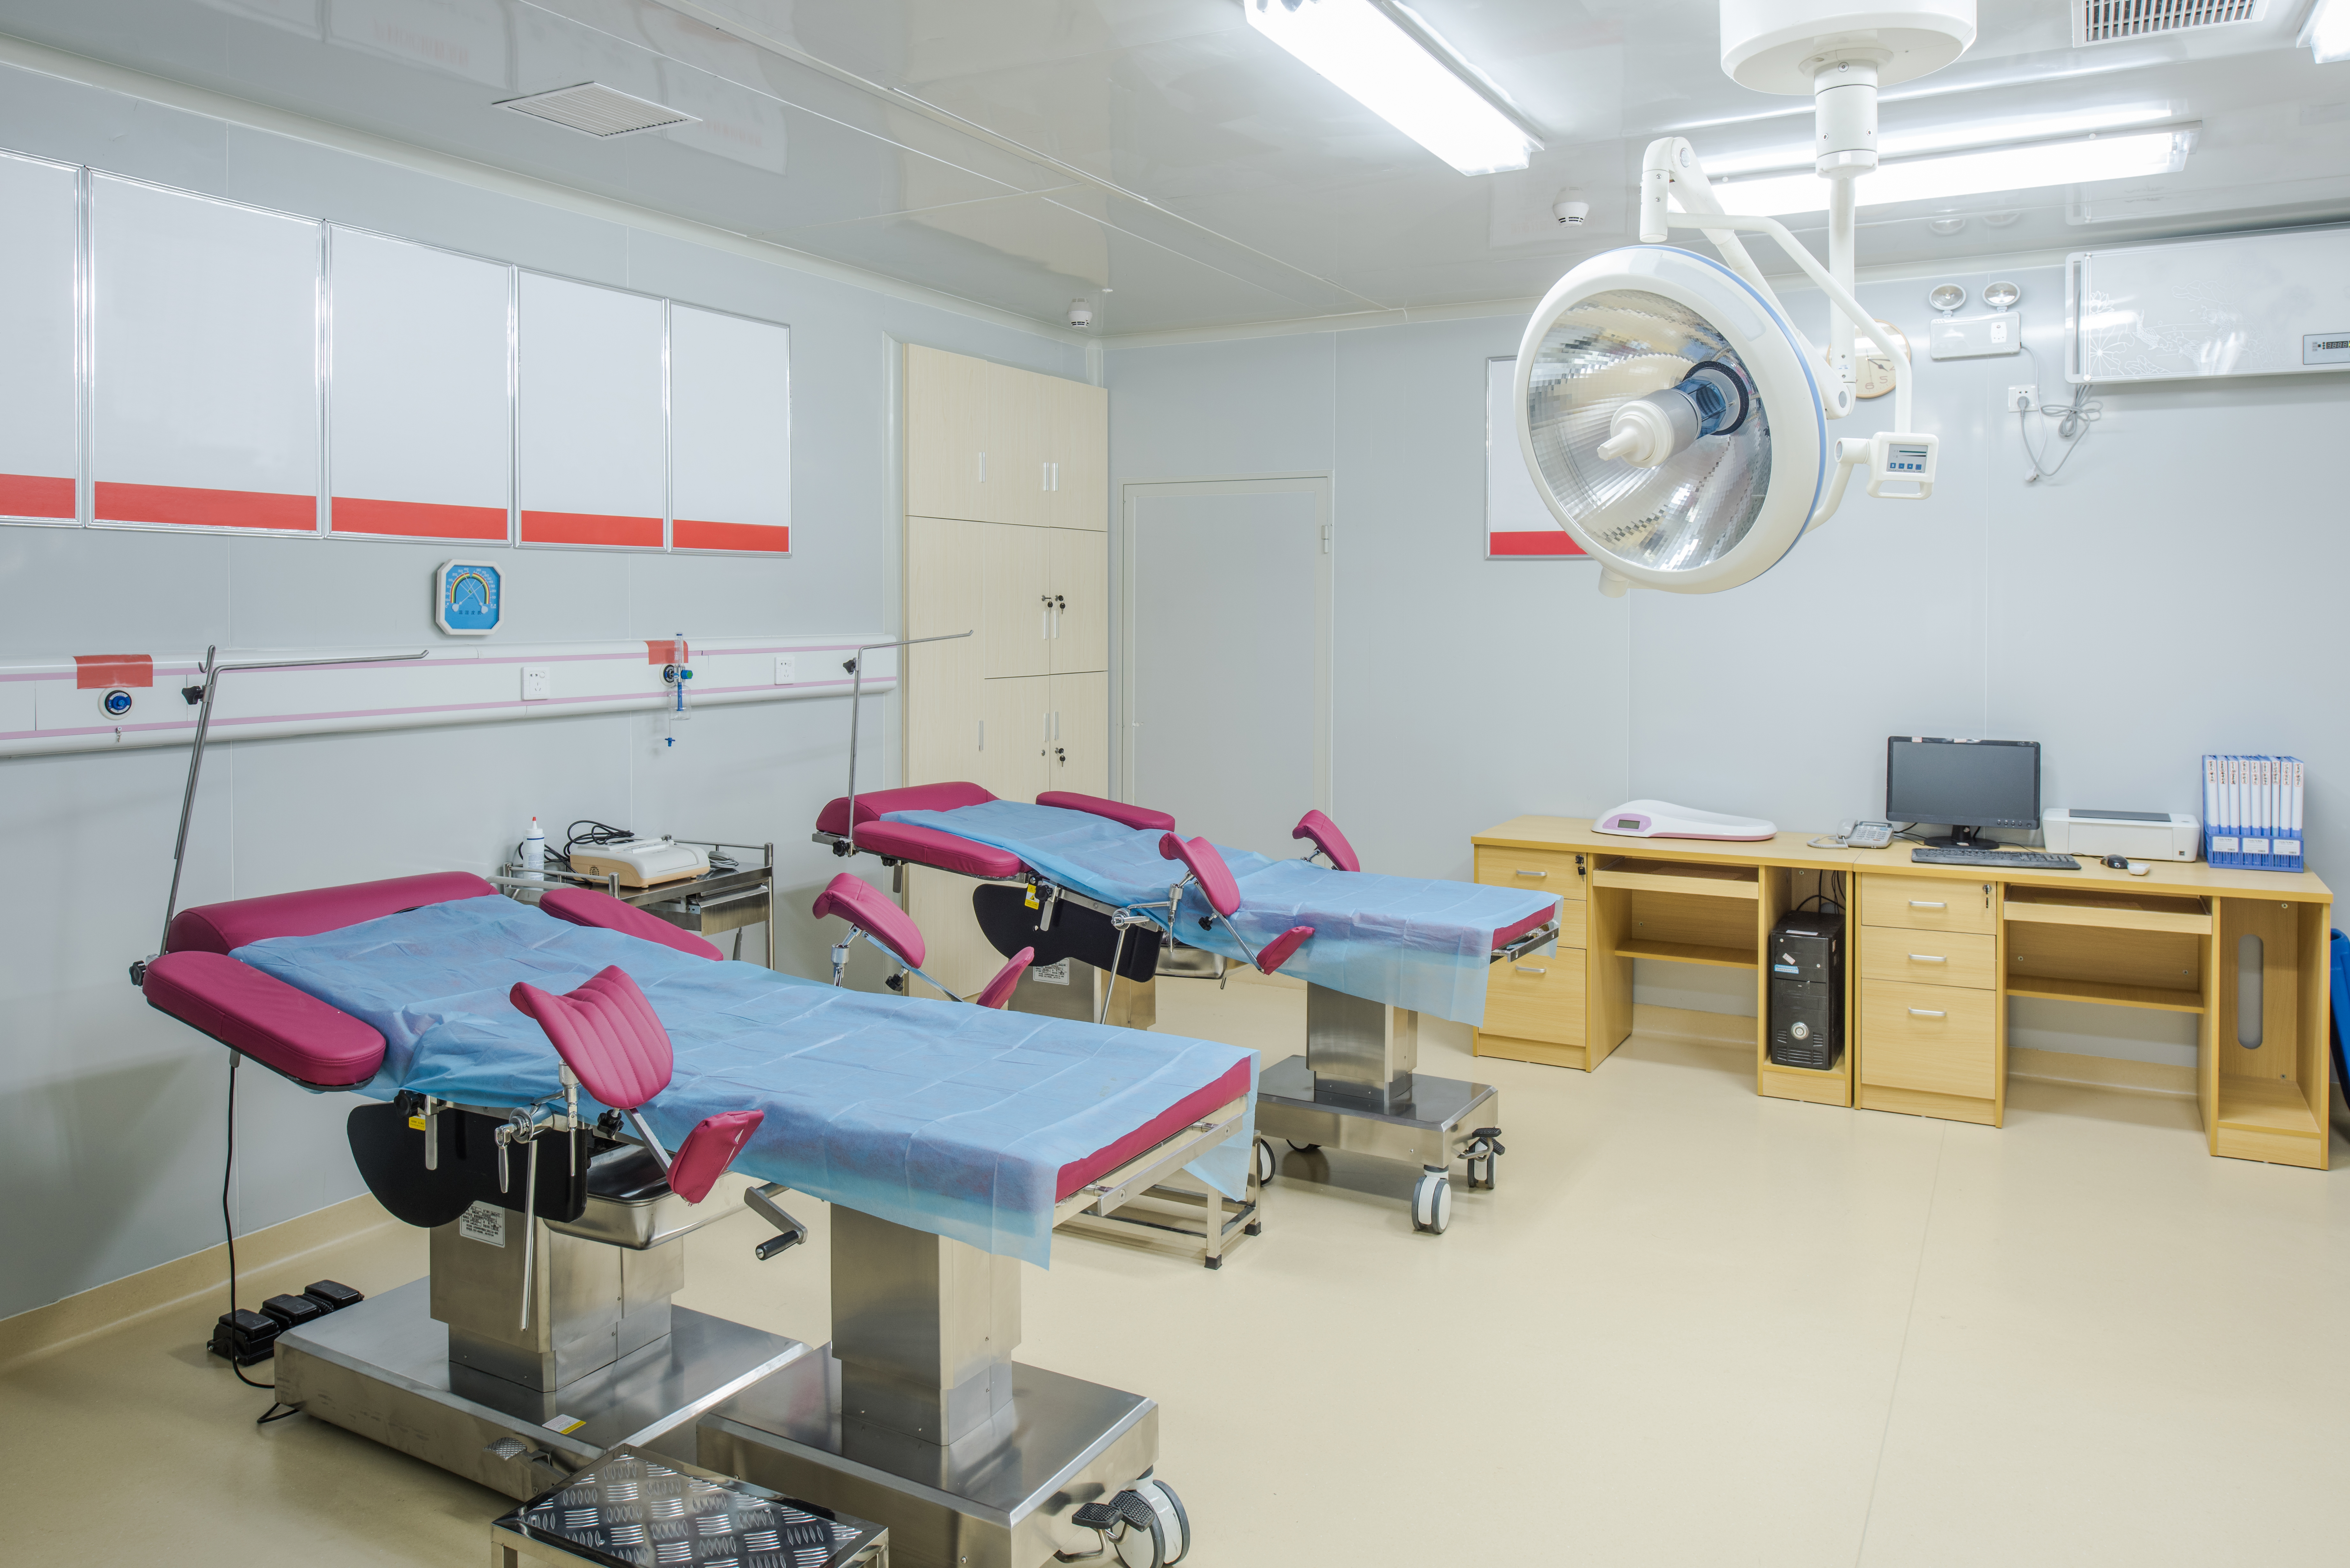 Hospital delivery room.